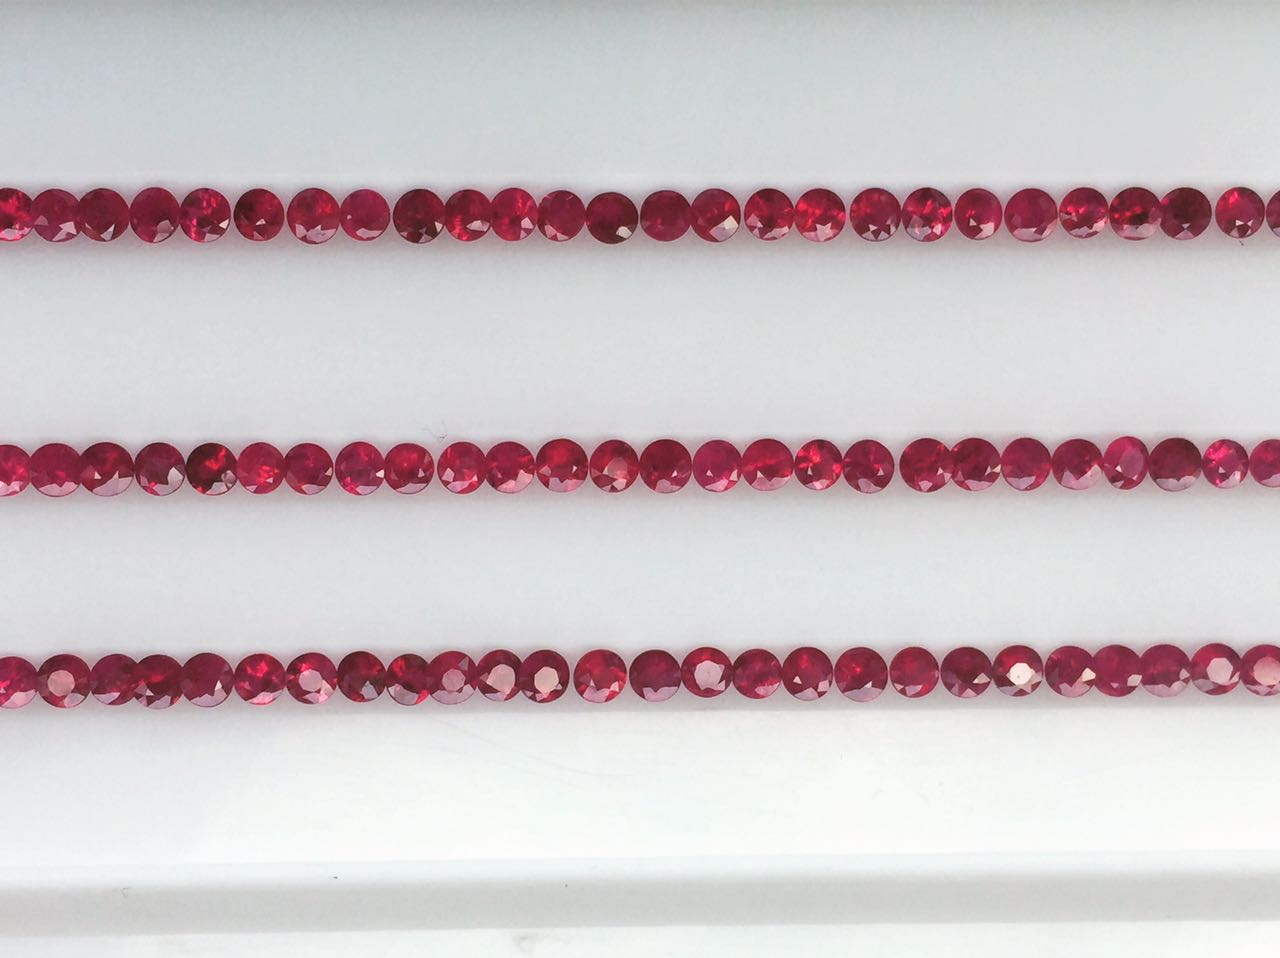 Ruby melee sizes